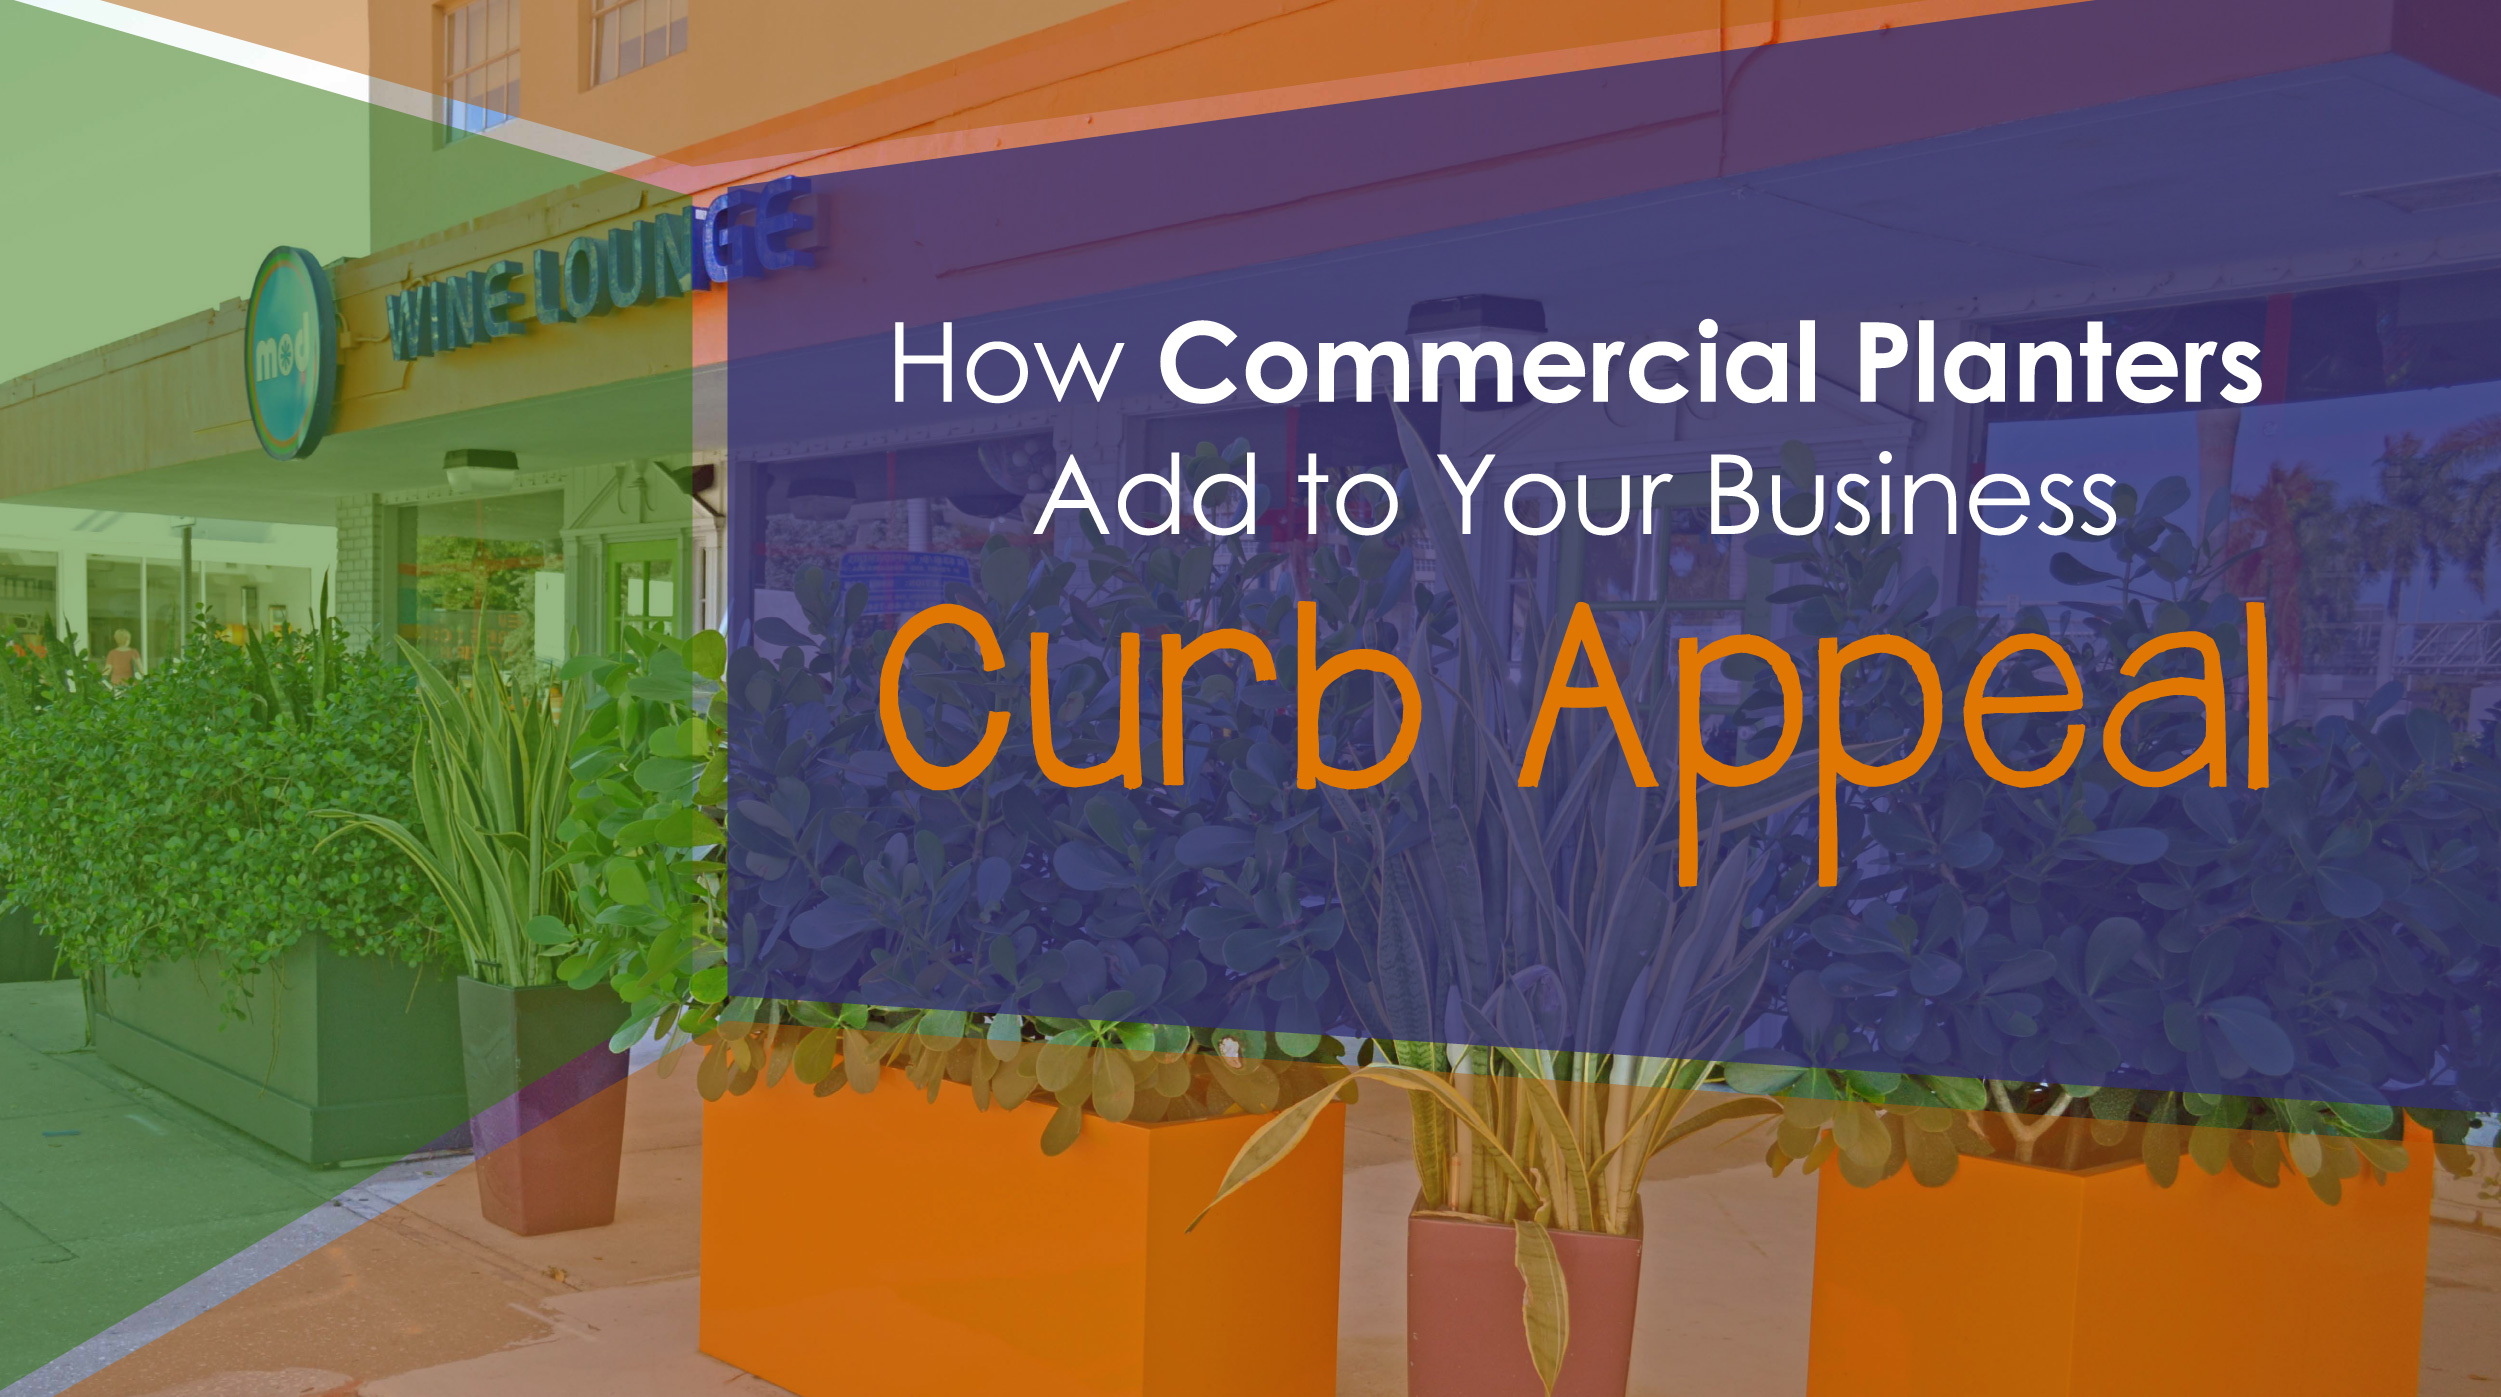 Commercial Planters Add to Your Business Curb Appeal